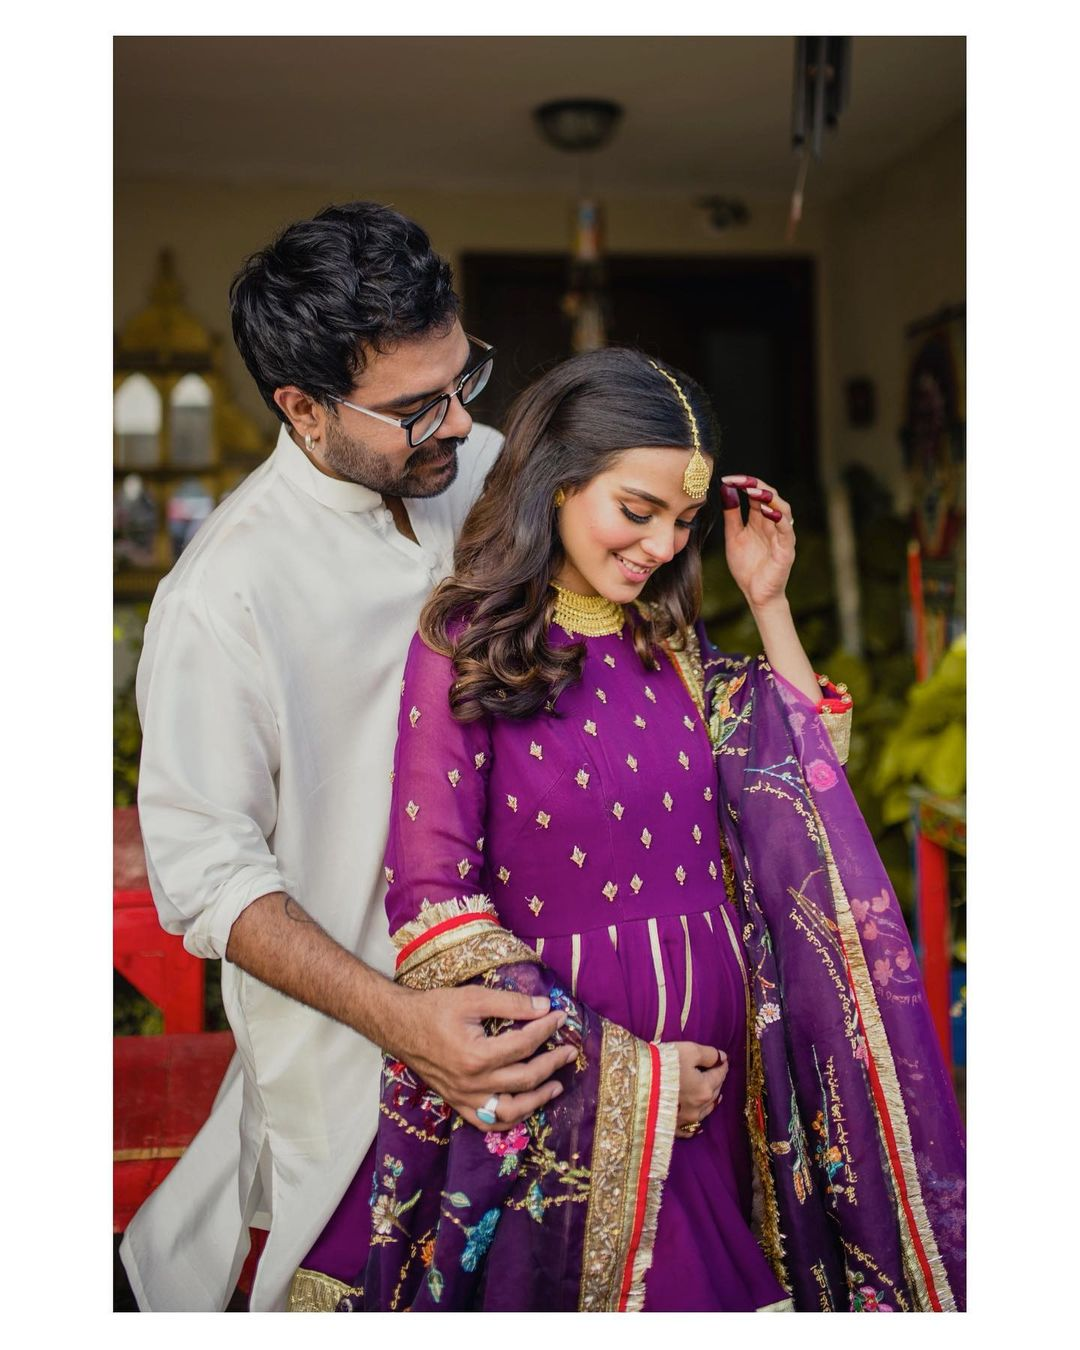 Iqra Aziz and Yasir Hussain